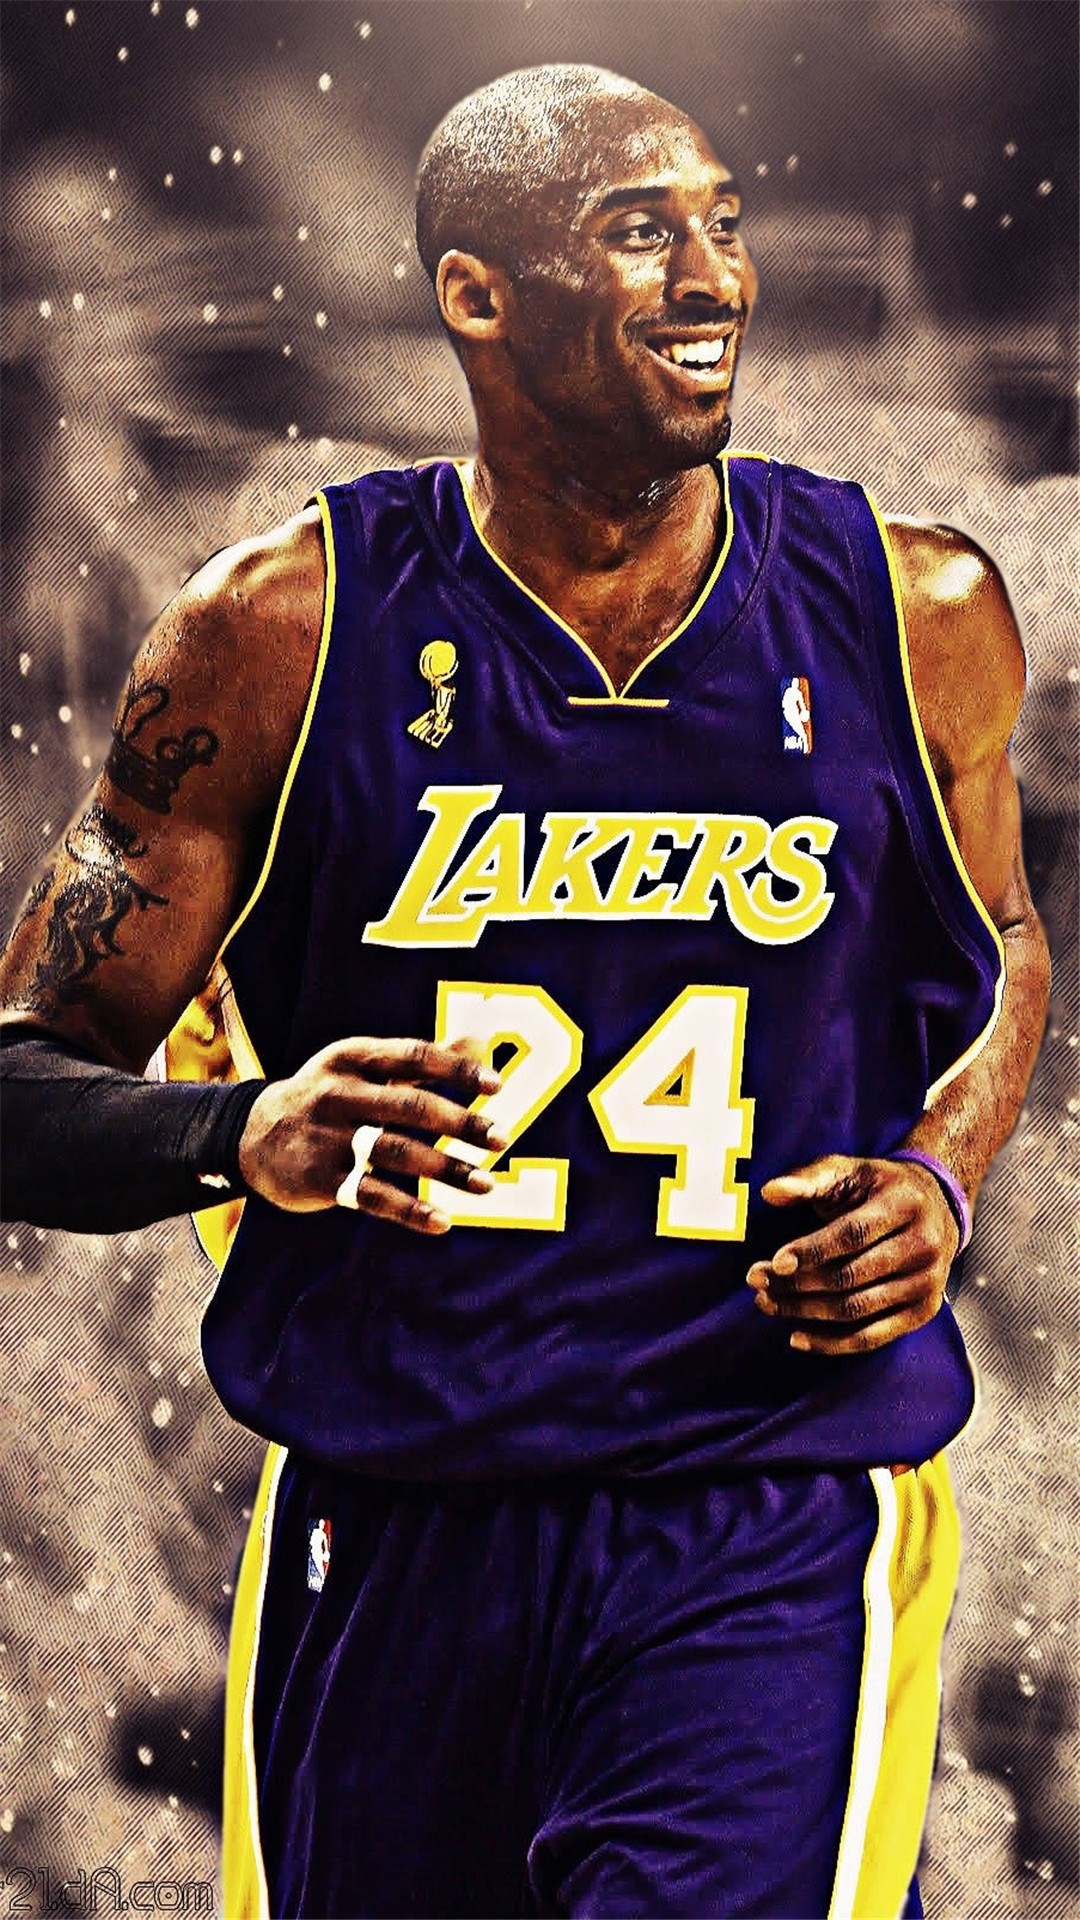 Kobe Bryant Wallpapers for Iphone 7, Iphone 7 plus, Iphone 6 plus